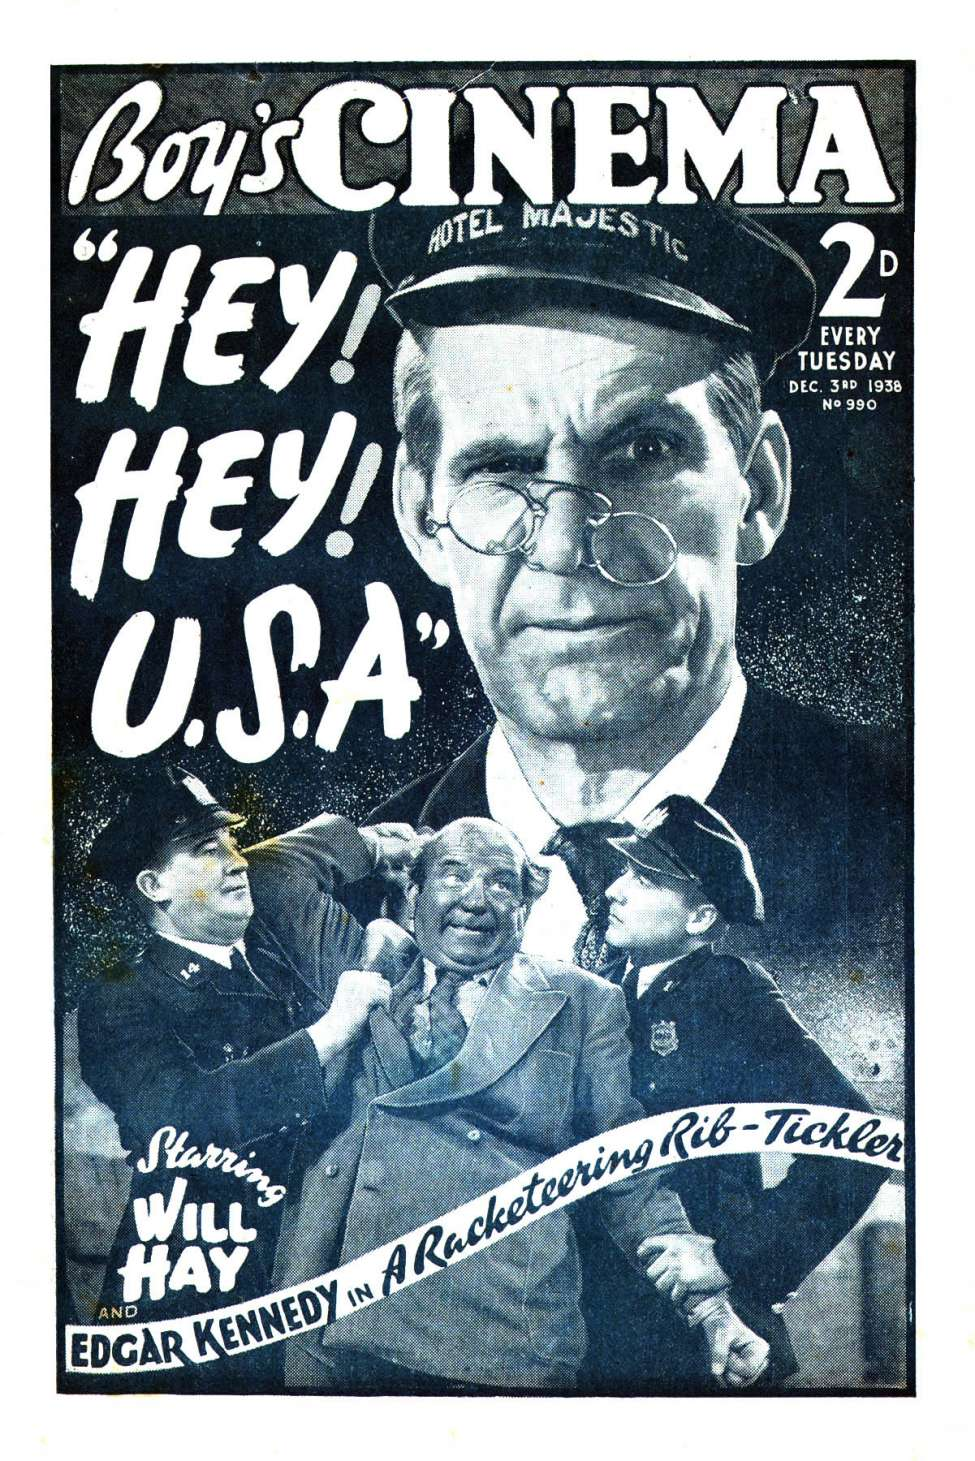 Comic Book Cover For Boy's Cinema 0990 - Hey! Hey! U.S.A. starring Will Hay